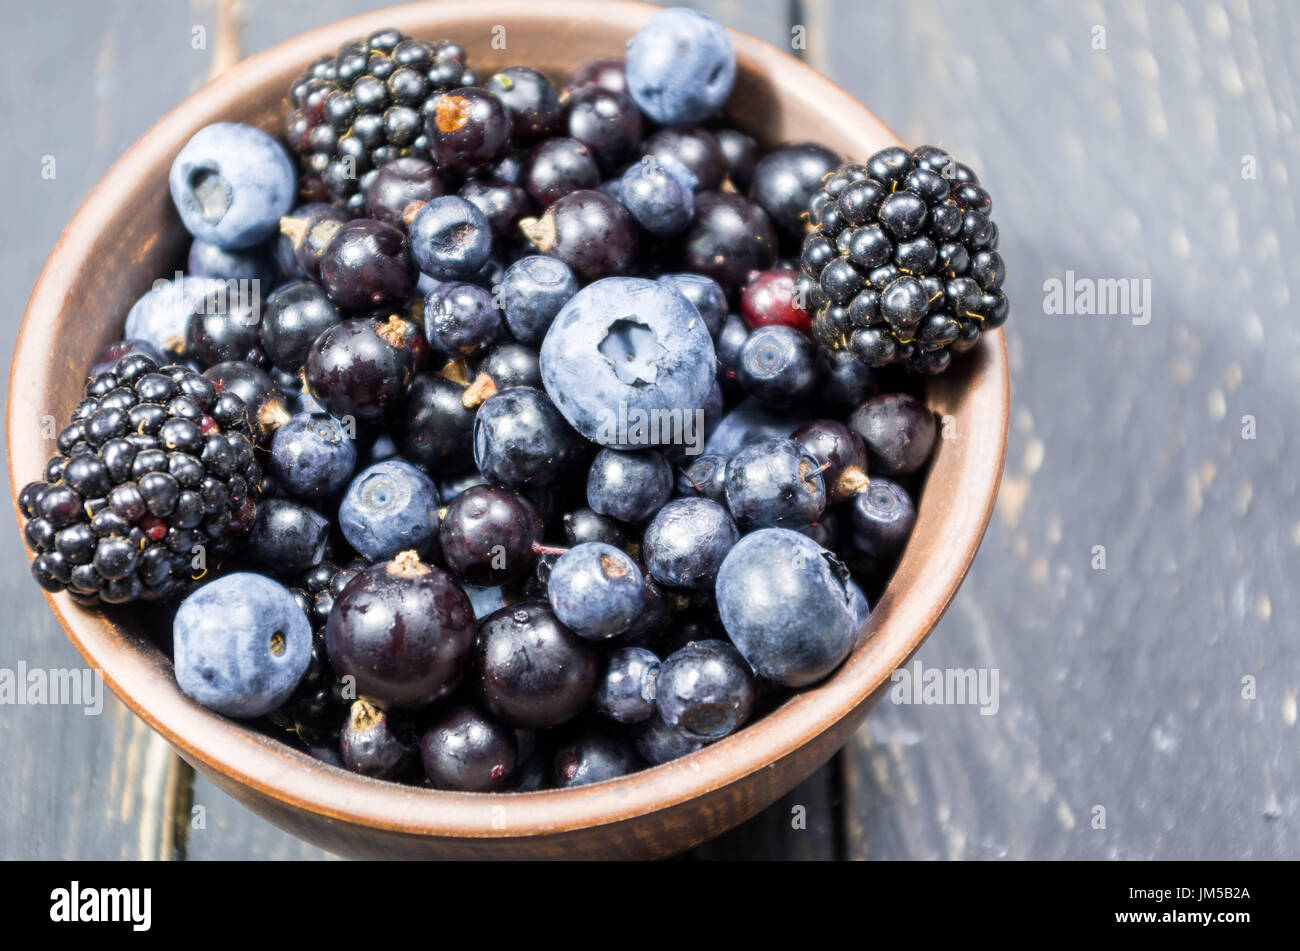 Photo of berries from close. Low depth of field. Decoration of forest berries. - Stock Image